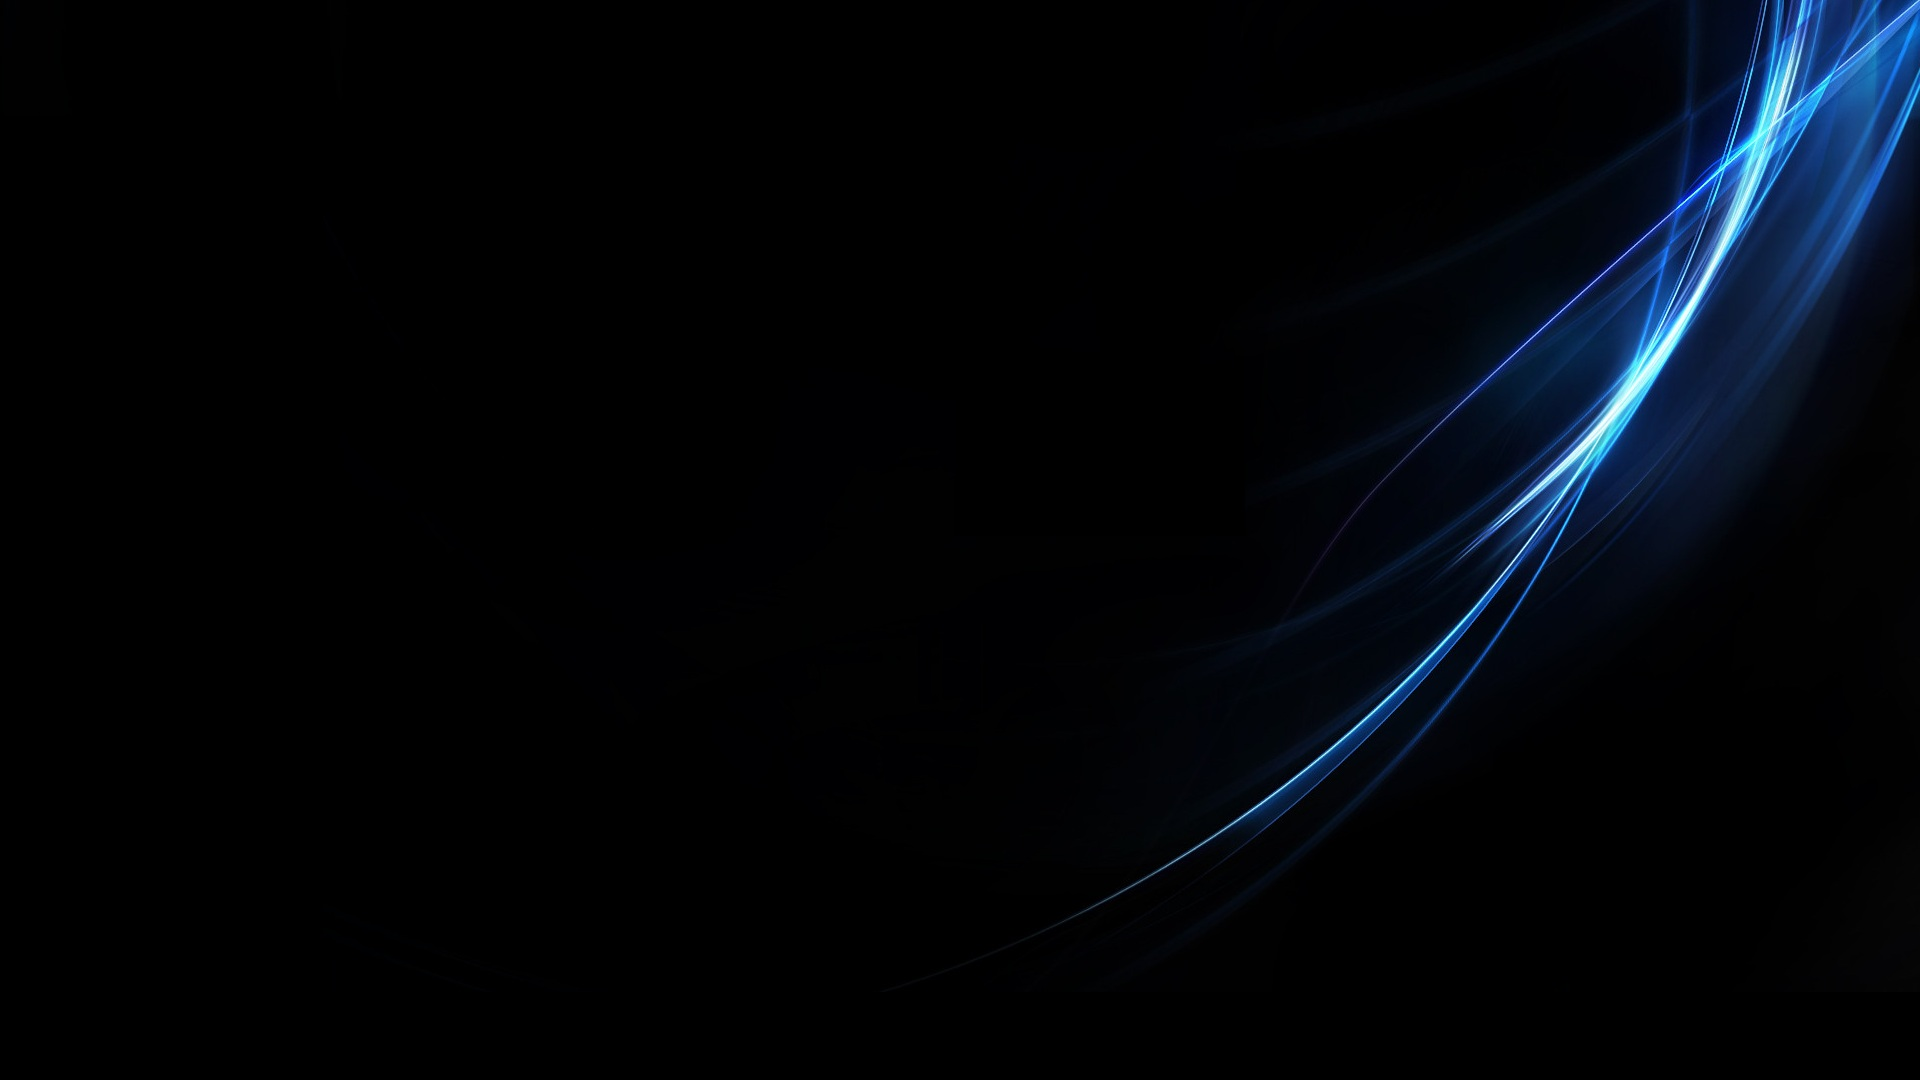 Abstract Blue Black Minimalistic Wallpaper 1920x1080 186307